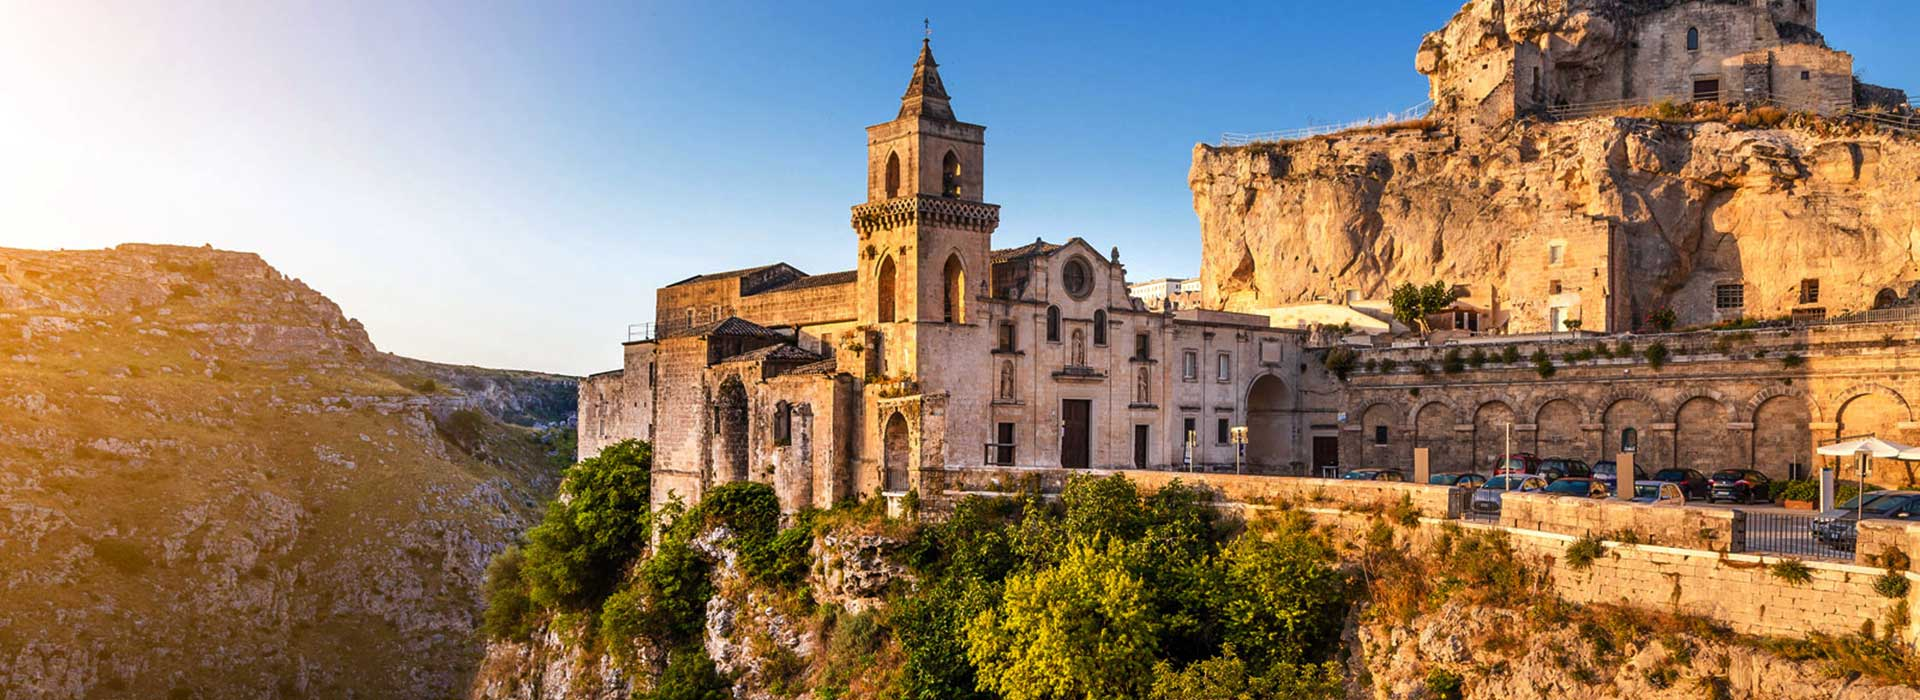 View of church on mountain, Matera, Italy